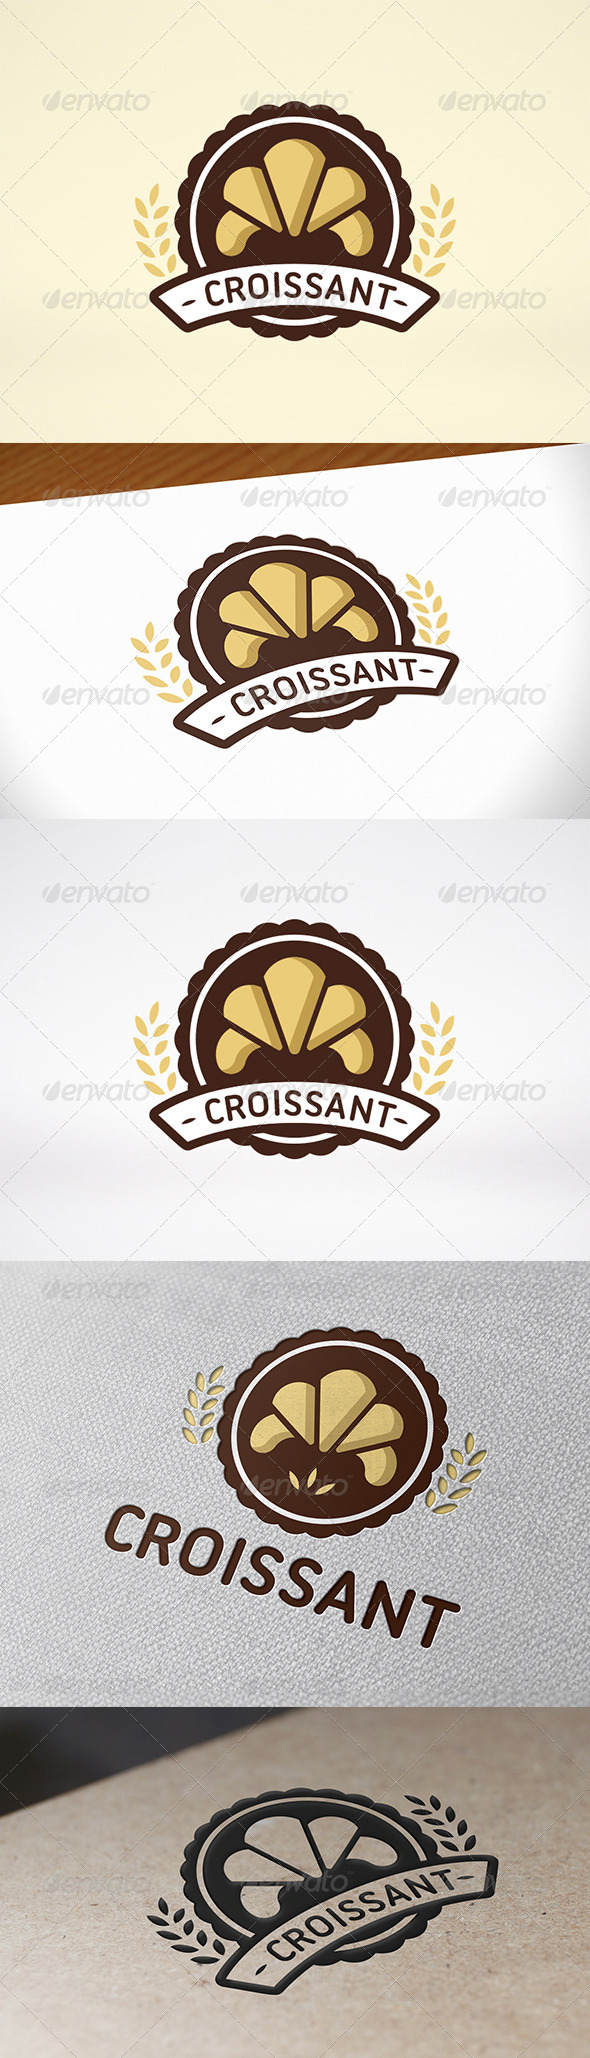 GraphicRiver Bakery Logo Template 7139790